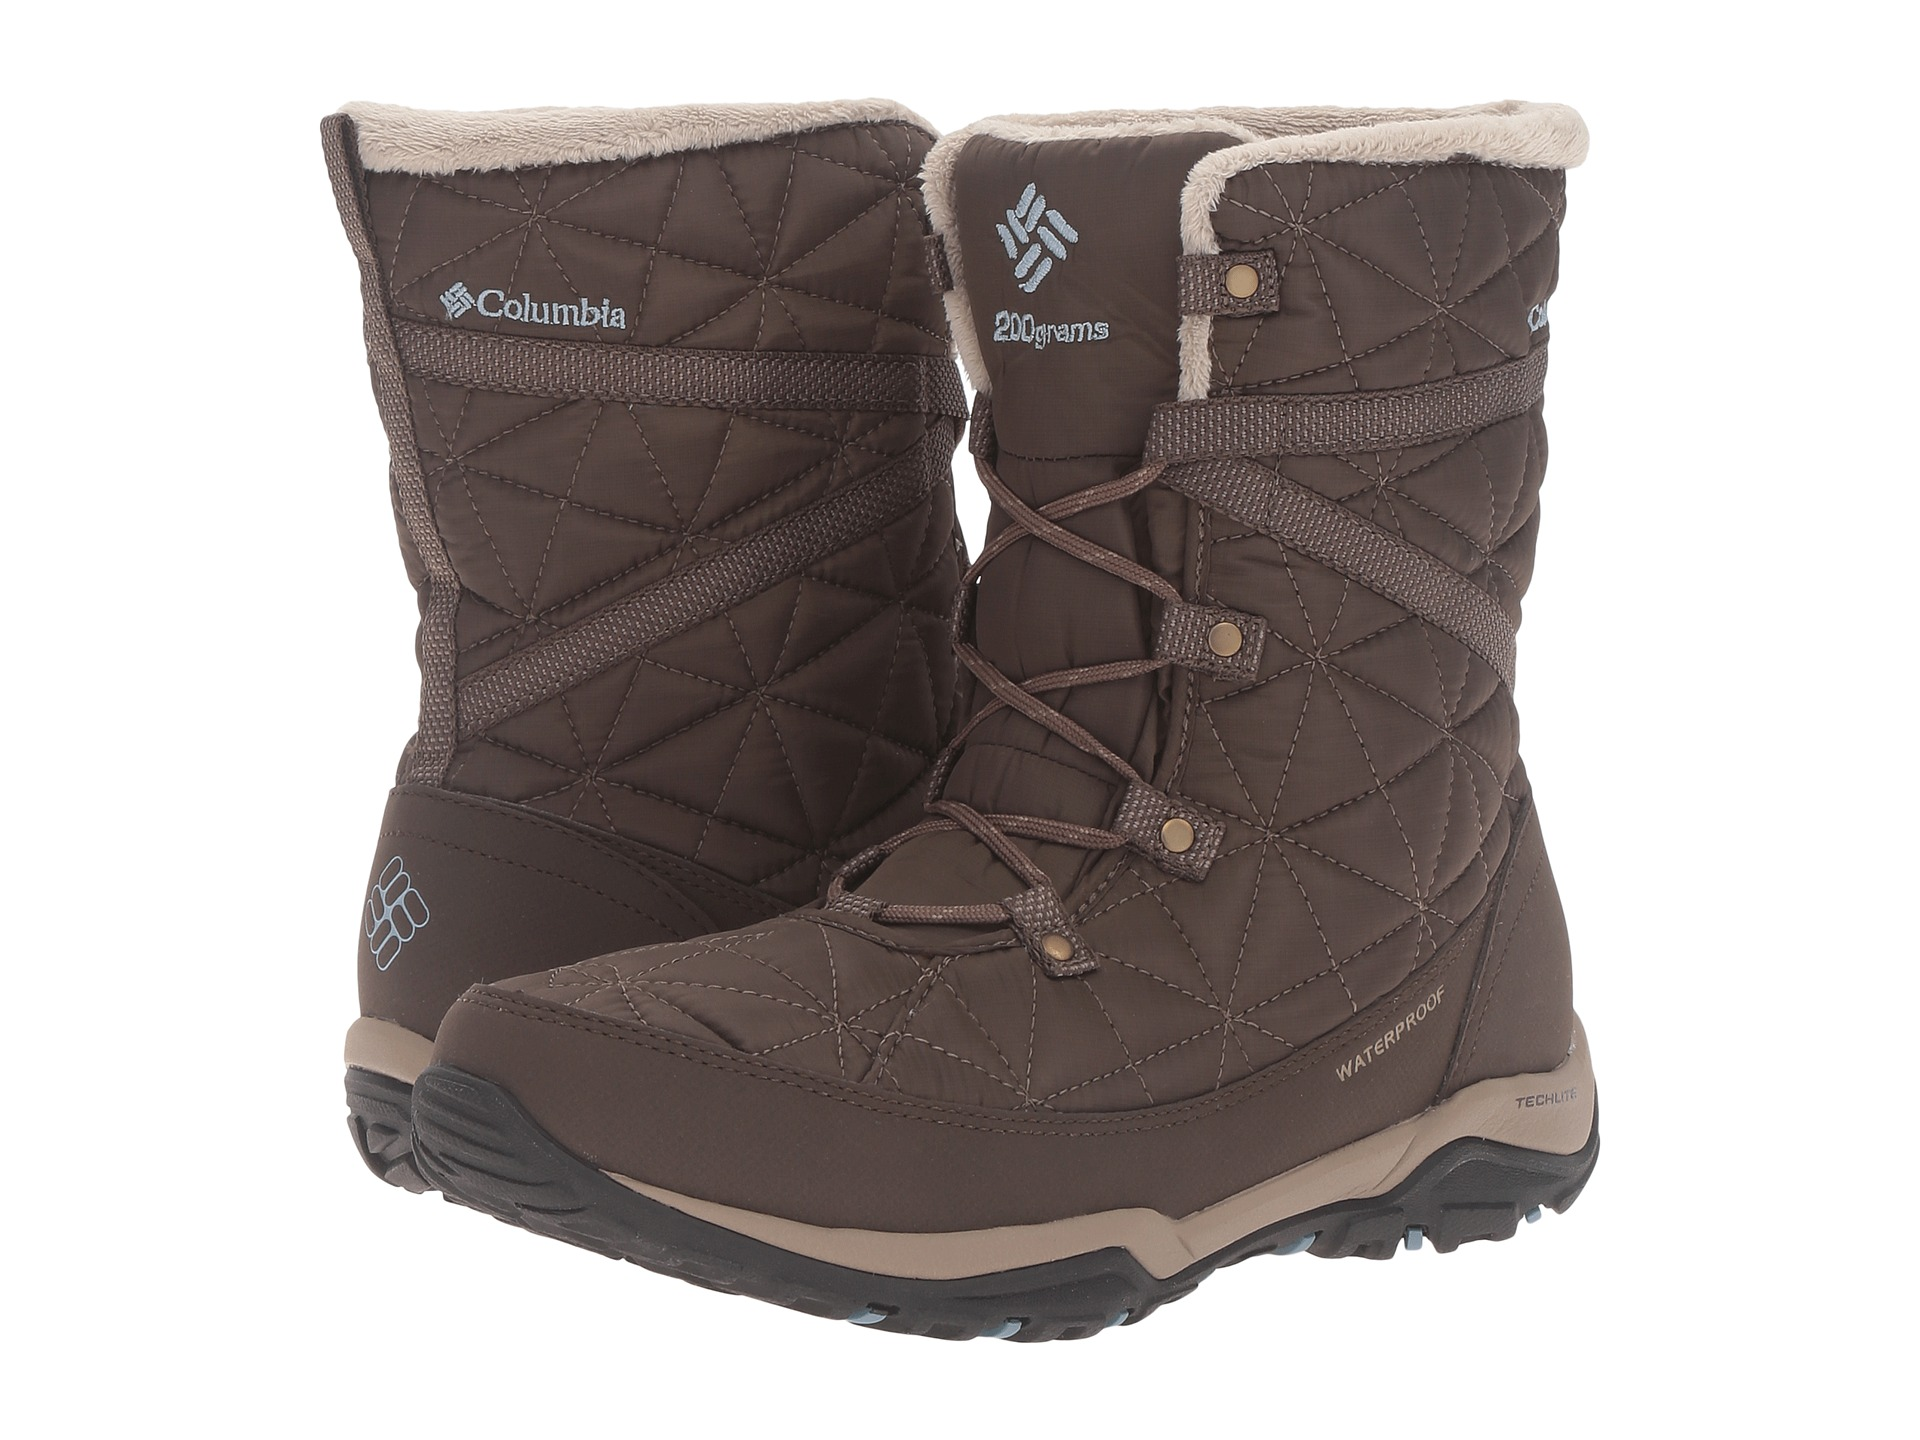 Columbia Colombia Waterproof Slip-proof Downy Snowy Boots Loveland Mid